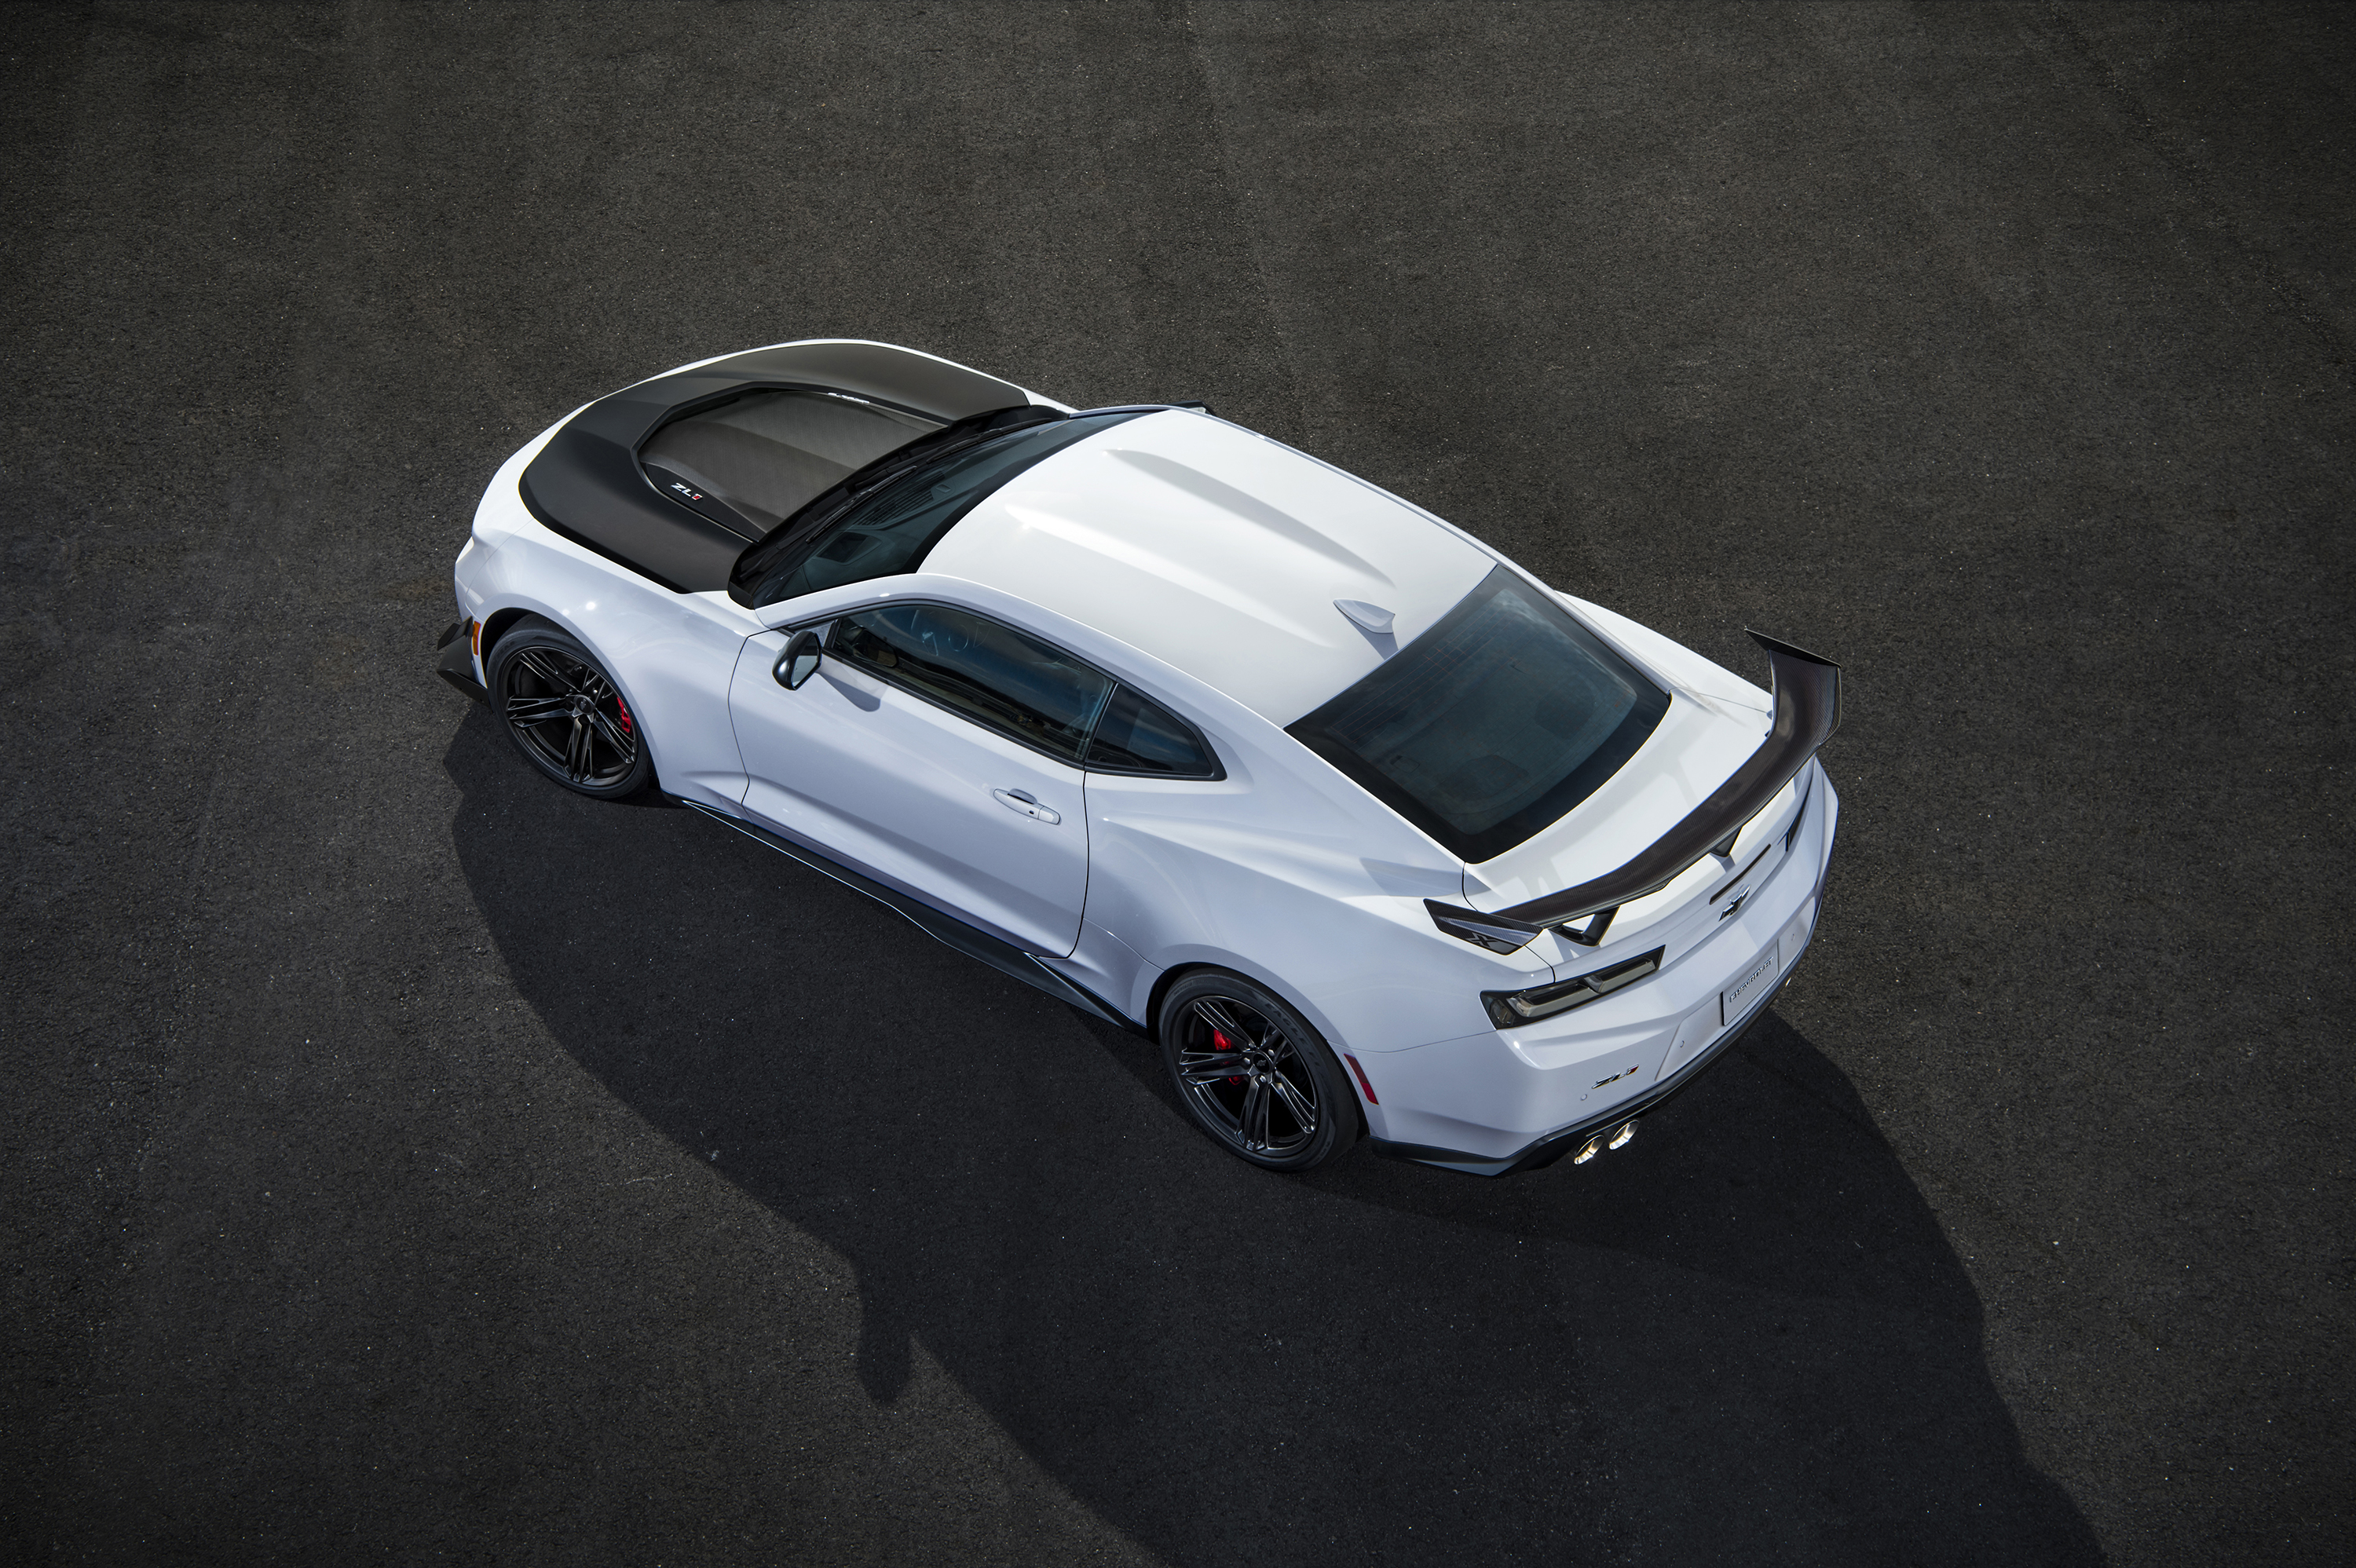 The Giant 2018 Chevrolet Camaro Zl1 1le Photo Gallery